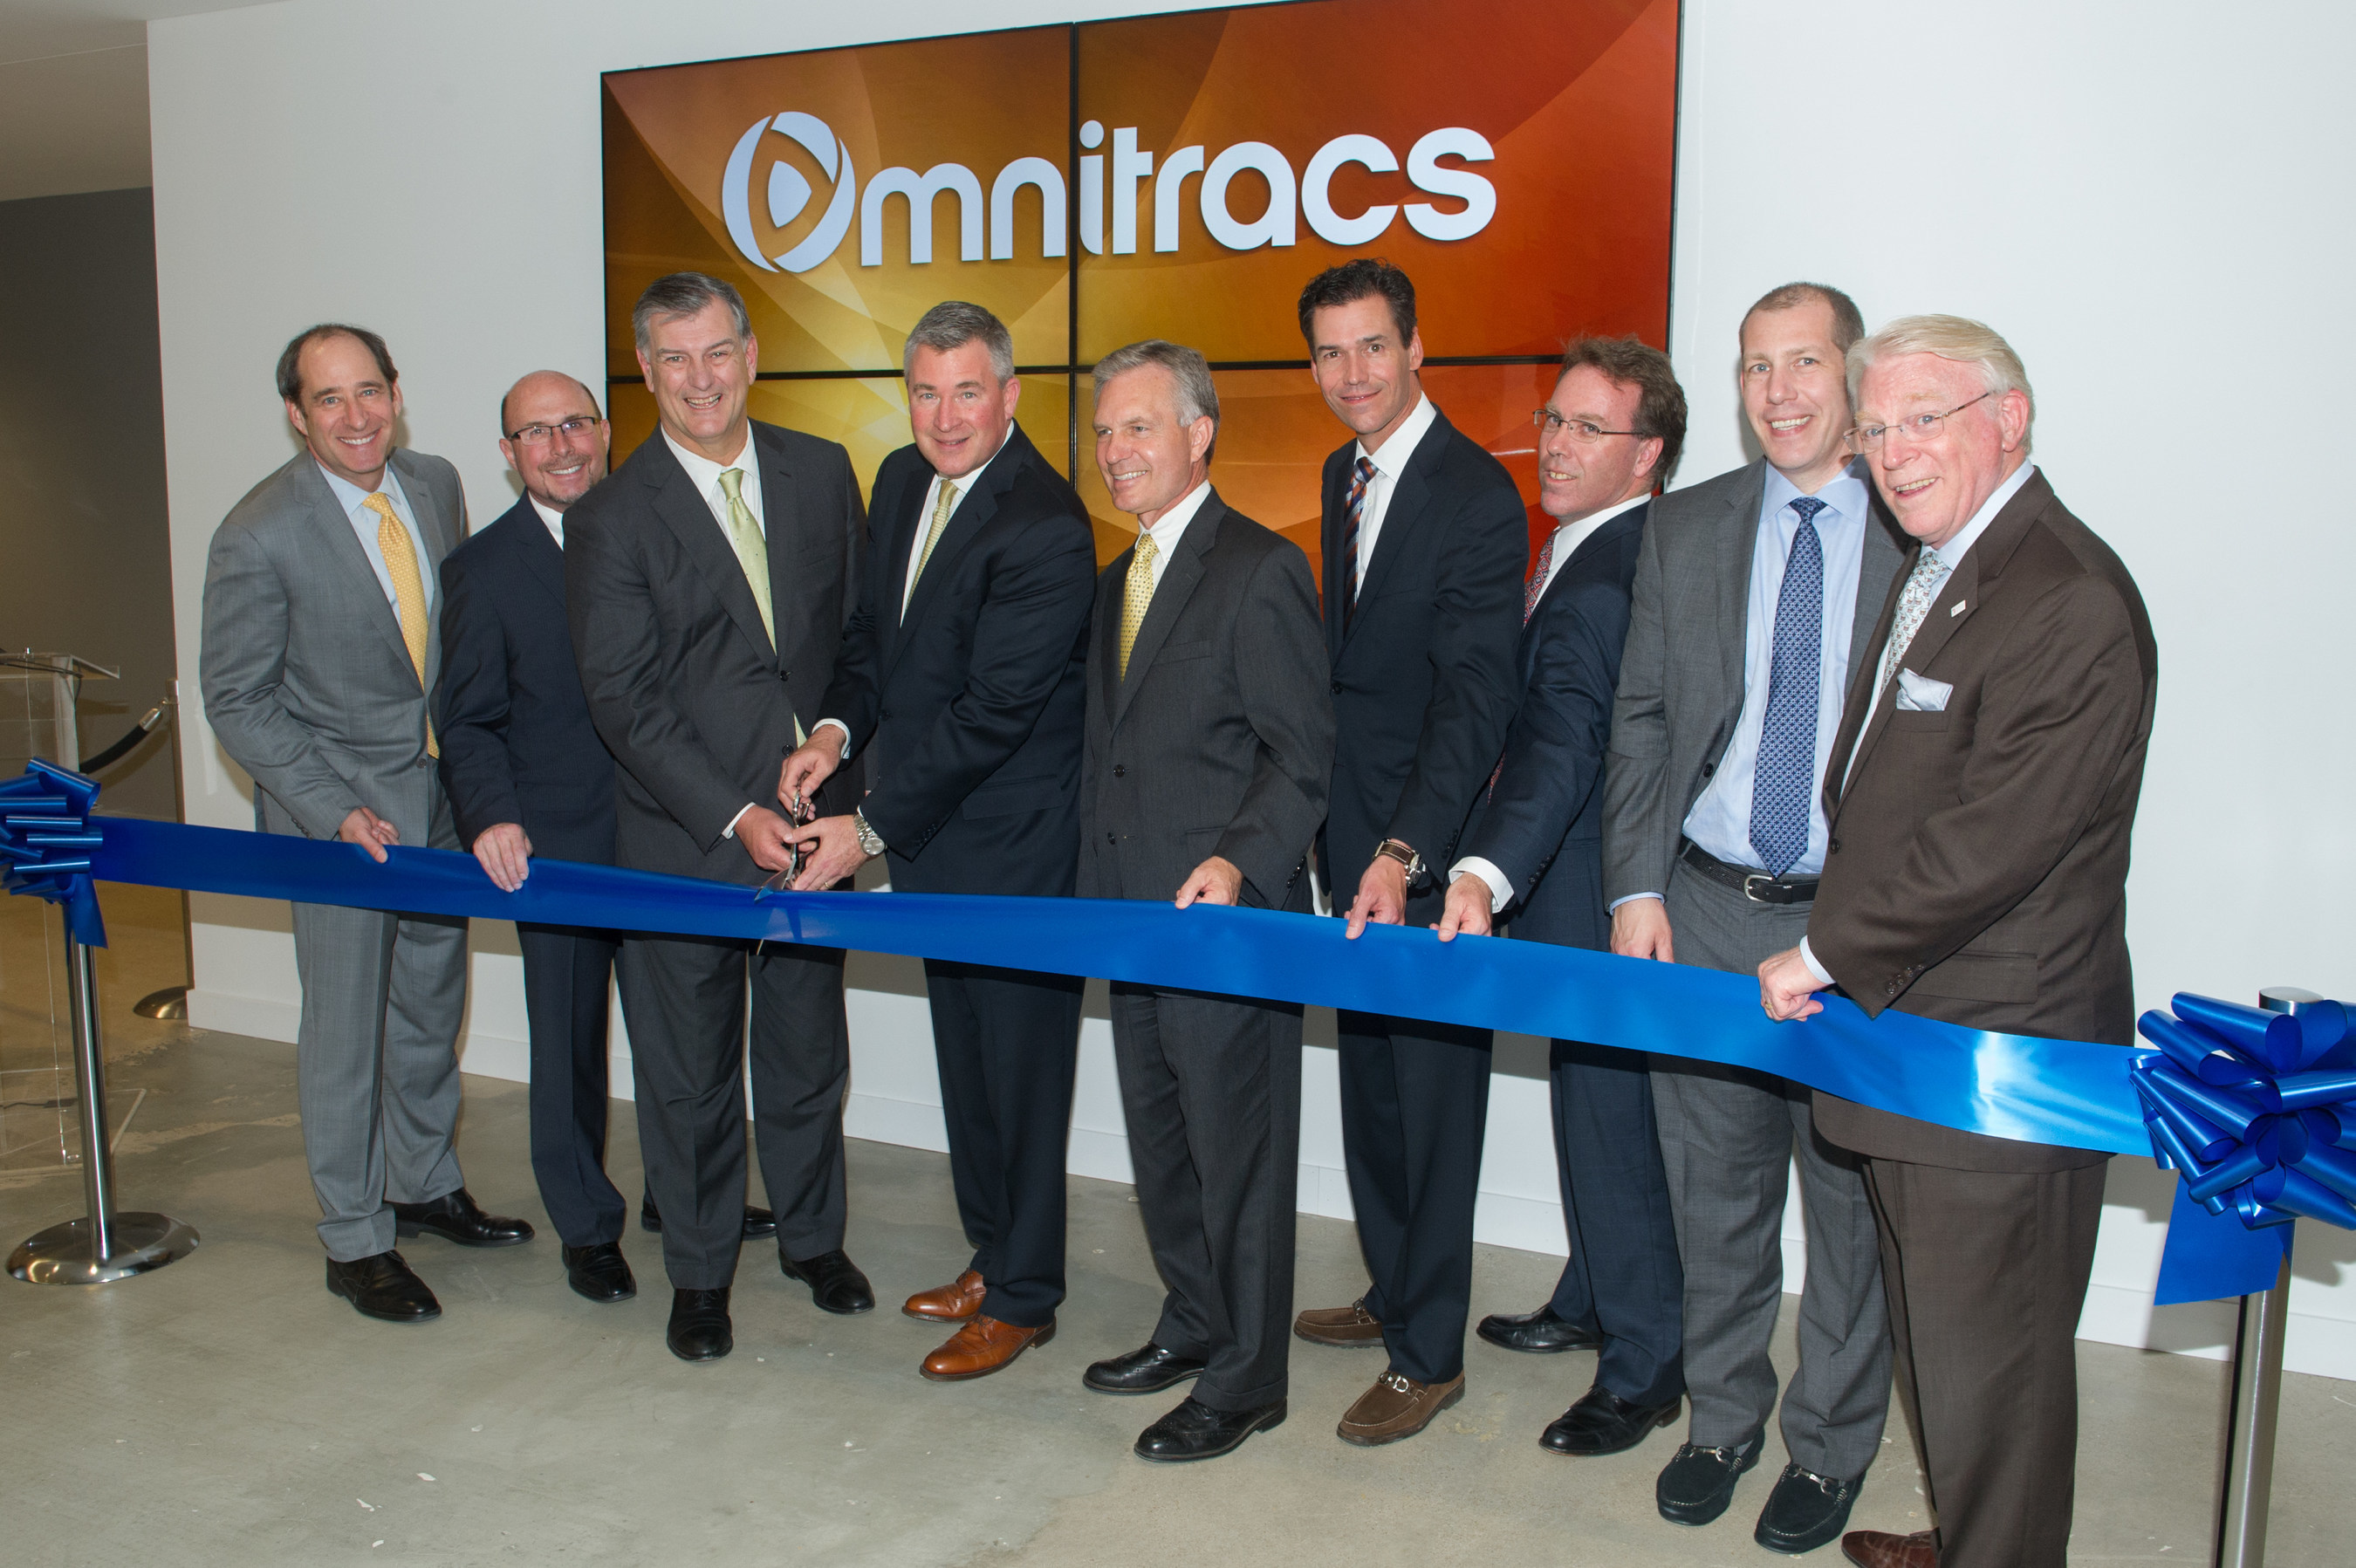 Omnitracs Celebrates New Dallas Headquarters With Open House And Ribbon Cutting Ceremony